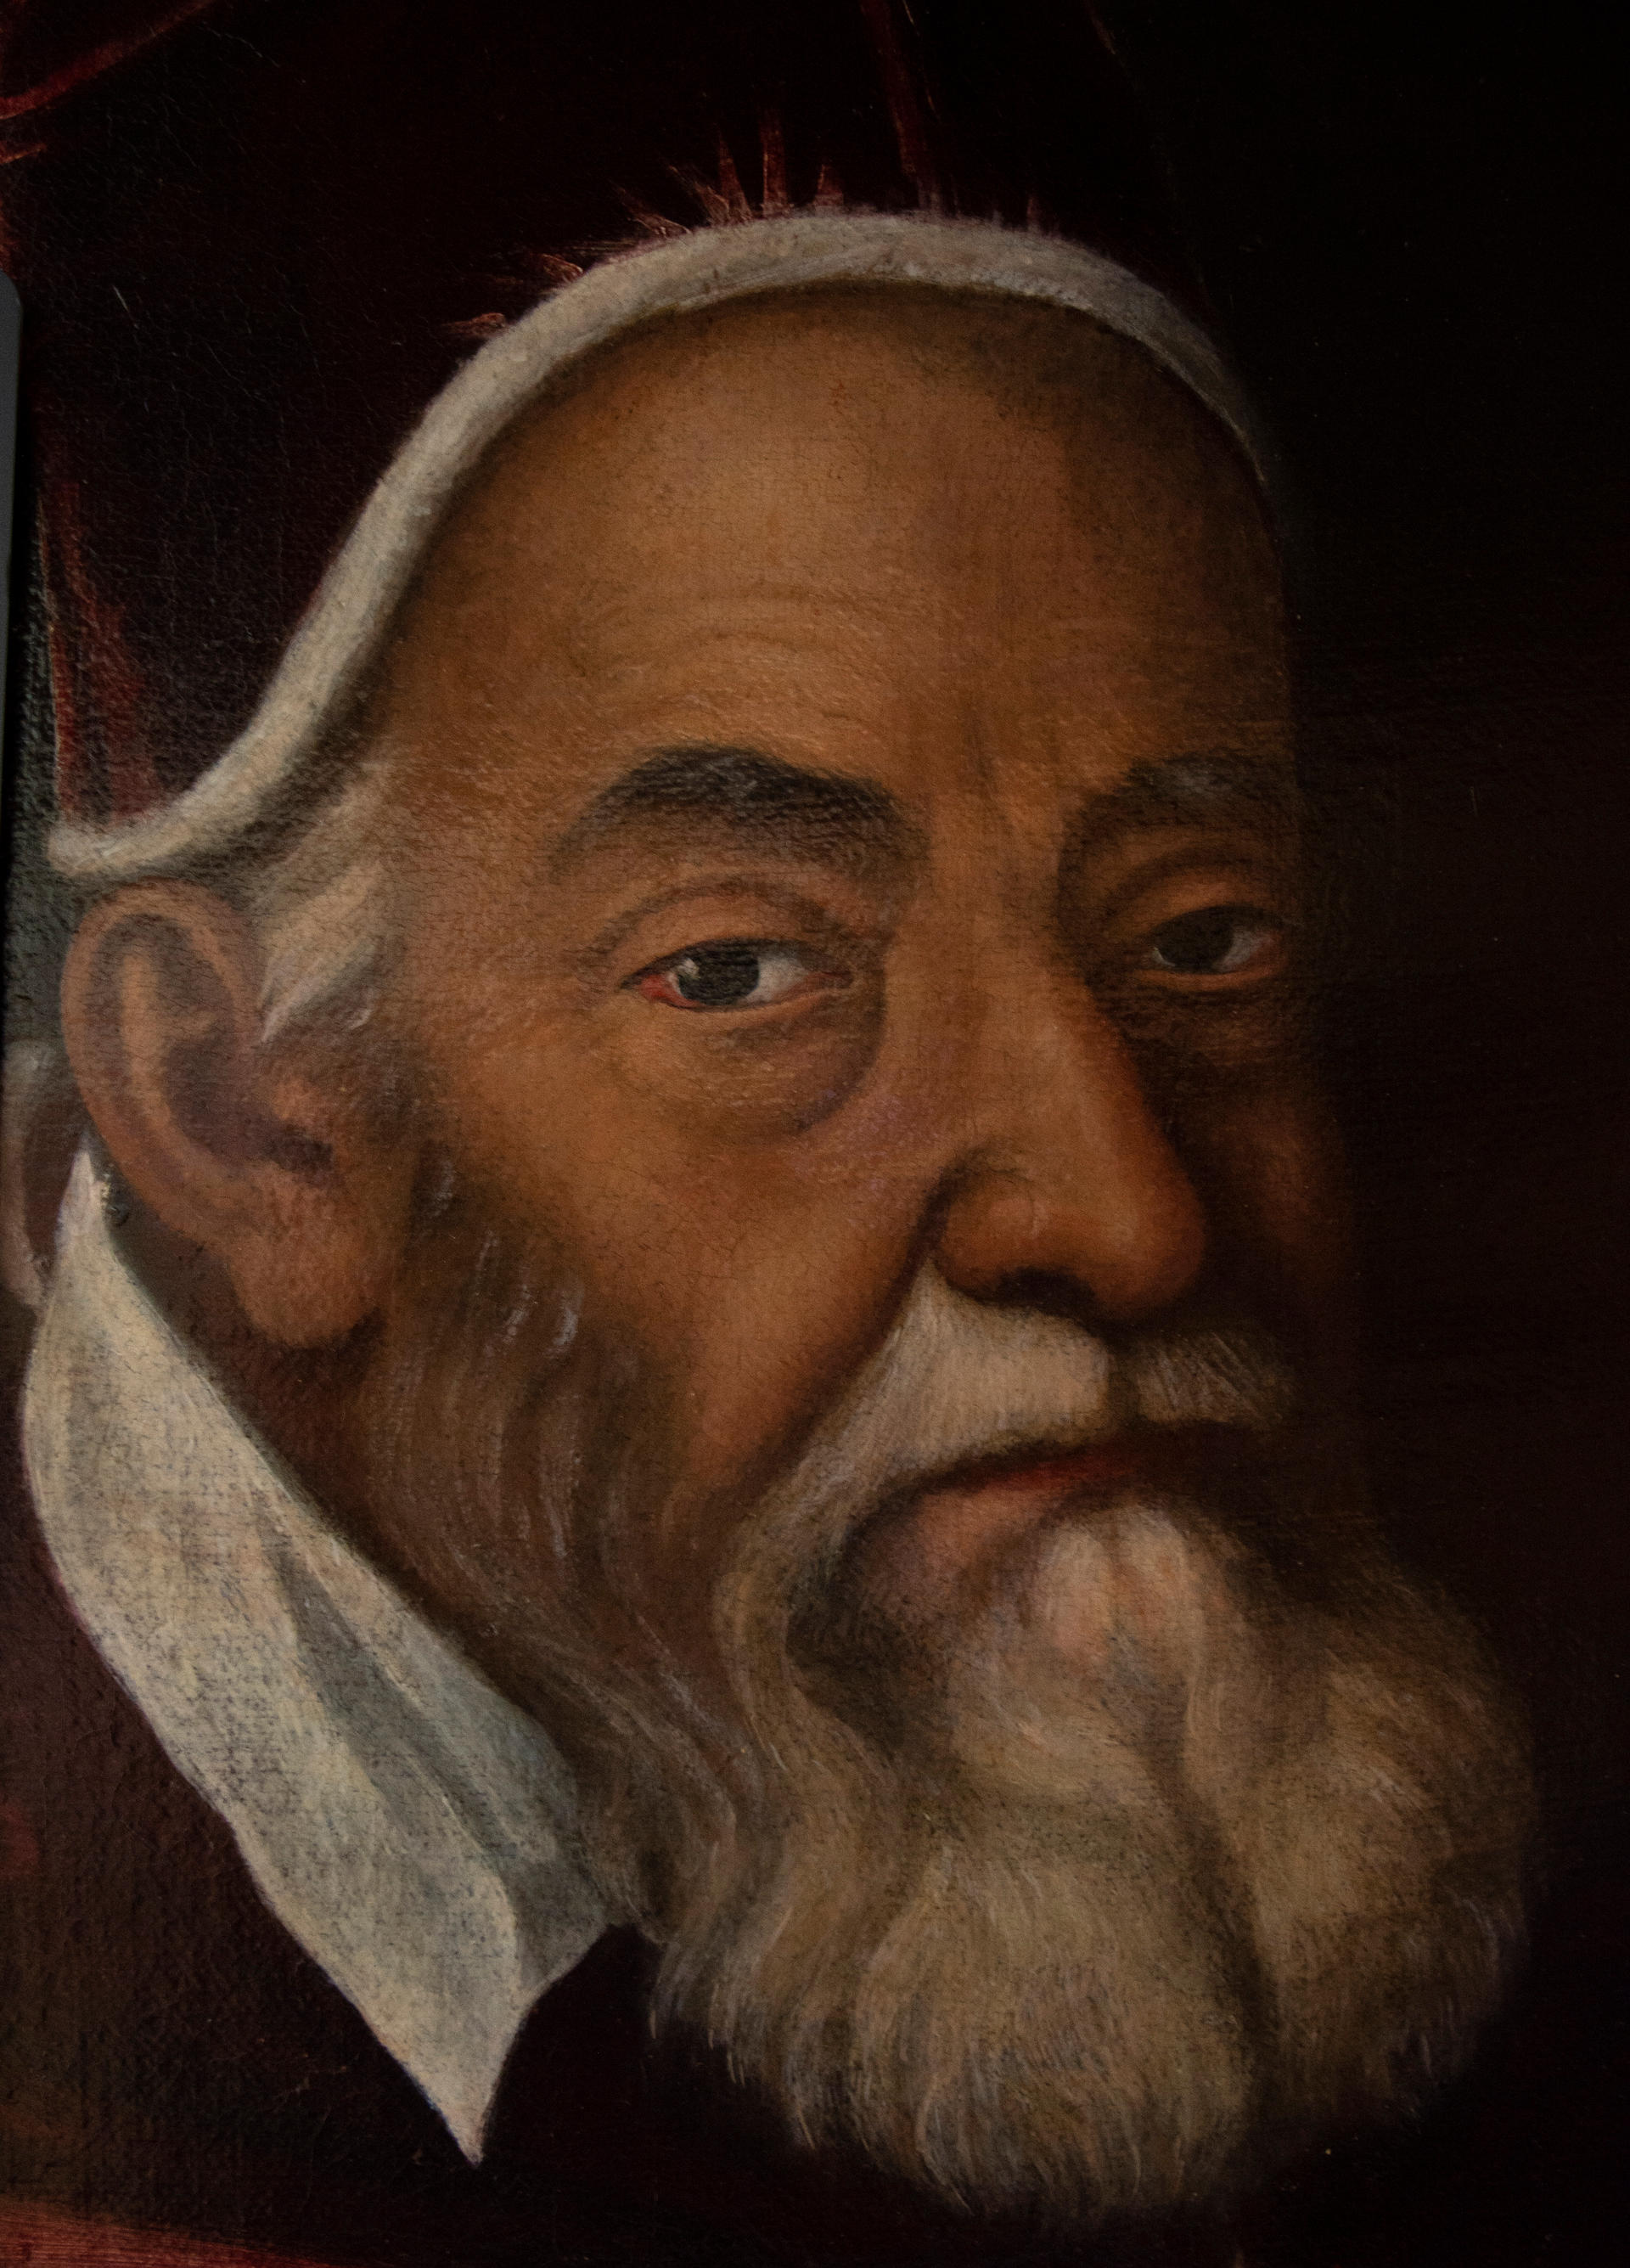 Detail of the Pope's face